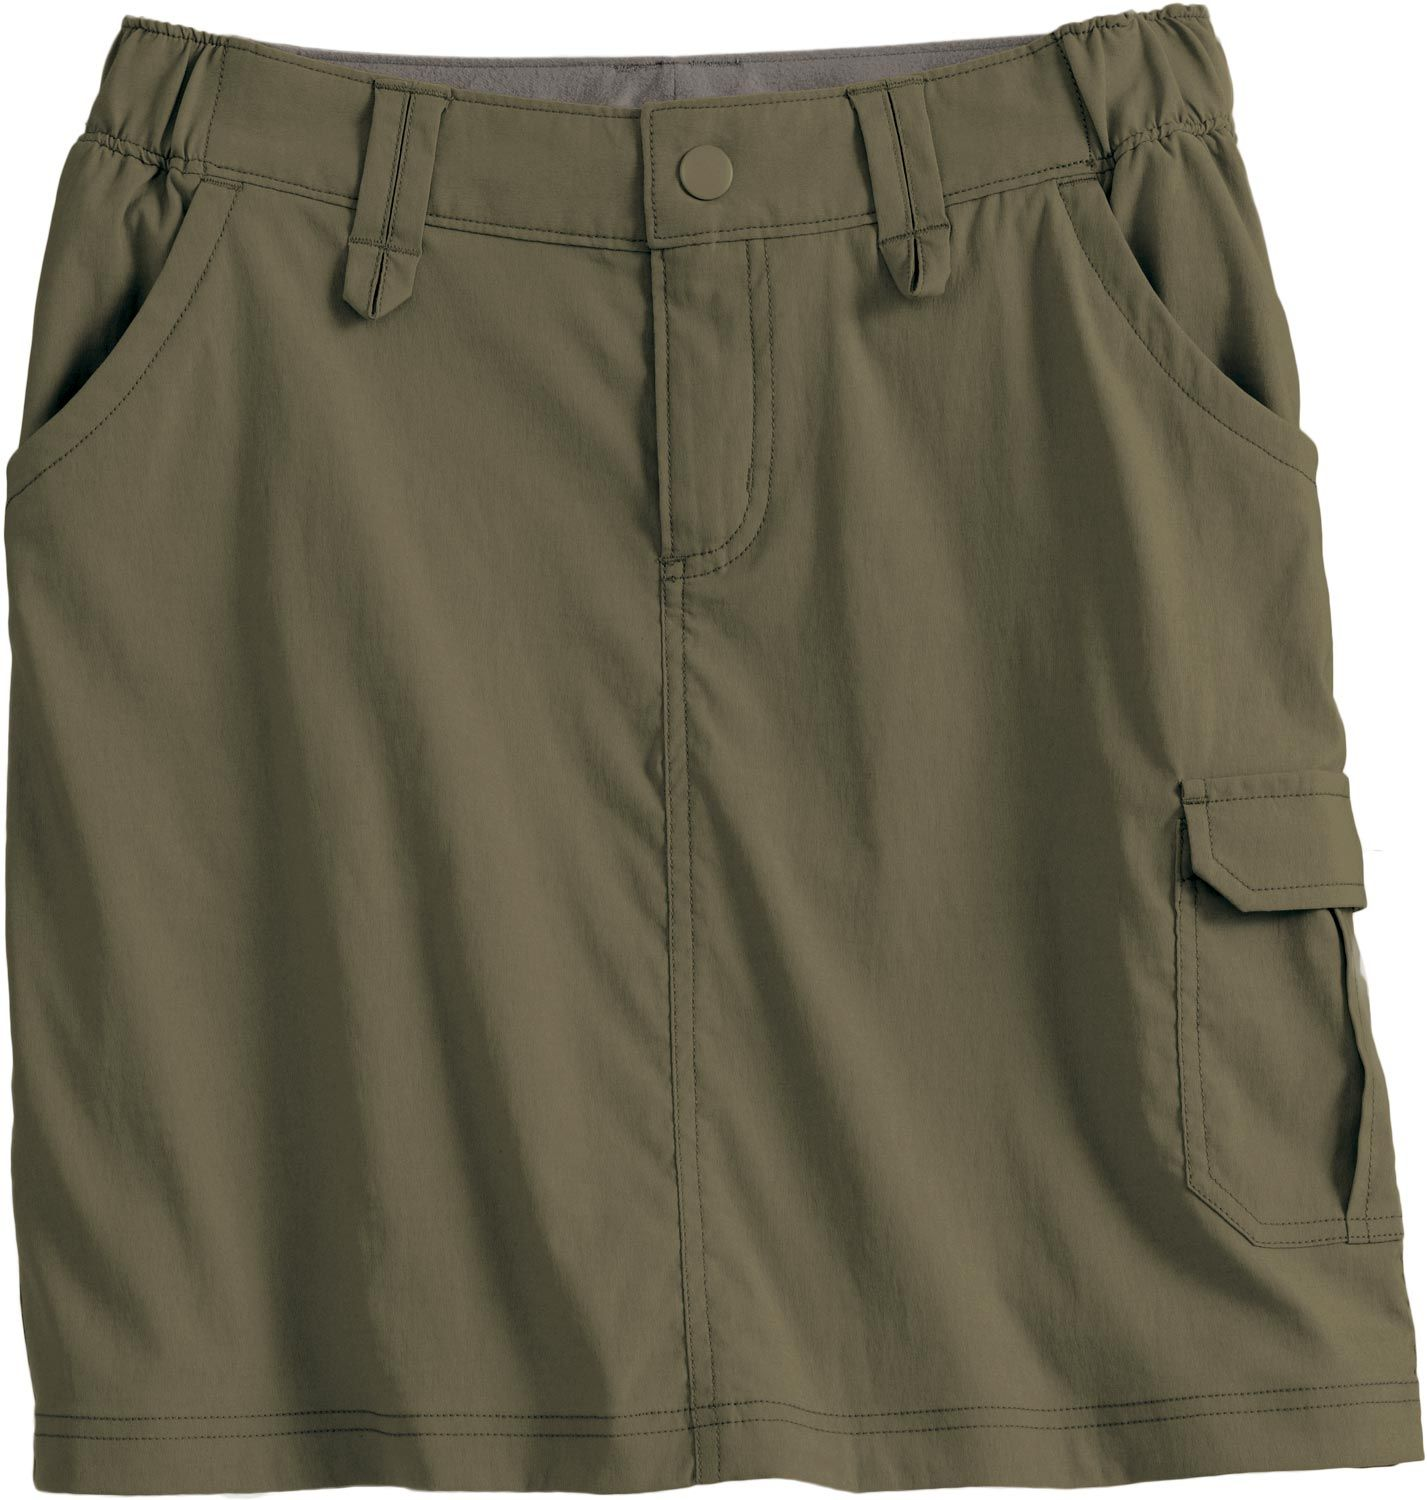 fe8d640a6b The DuluthFlex Dry on the Fly Nylon Skort is lightweight, wicks moisture,  and dries in a blink. Mesh shorts underneath add coverage and a cooler  climate.